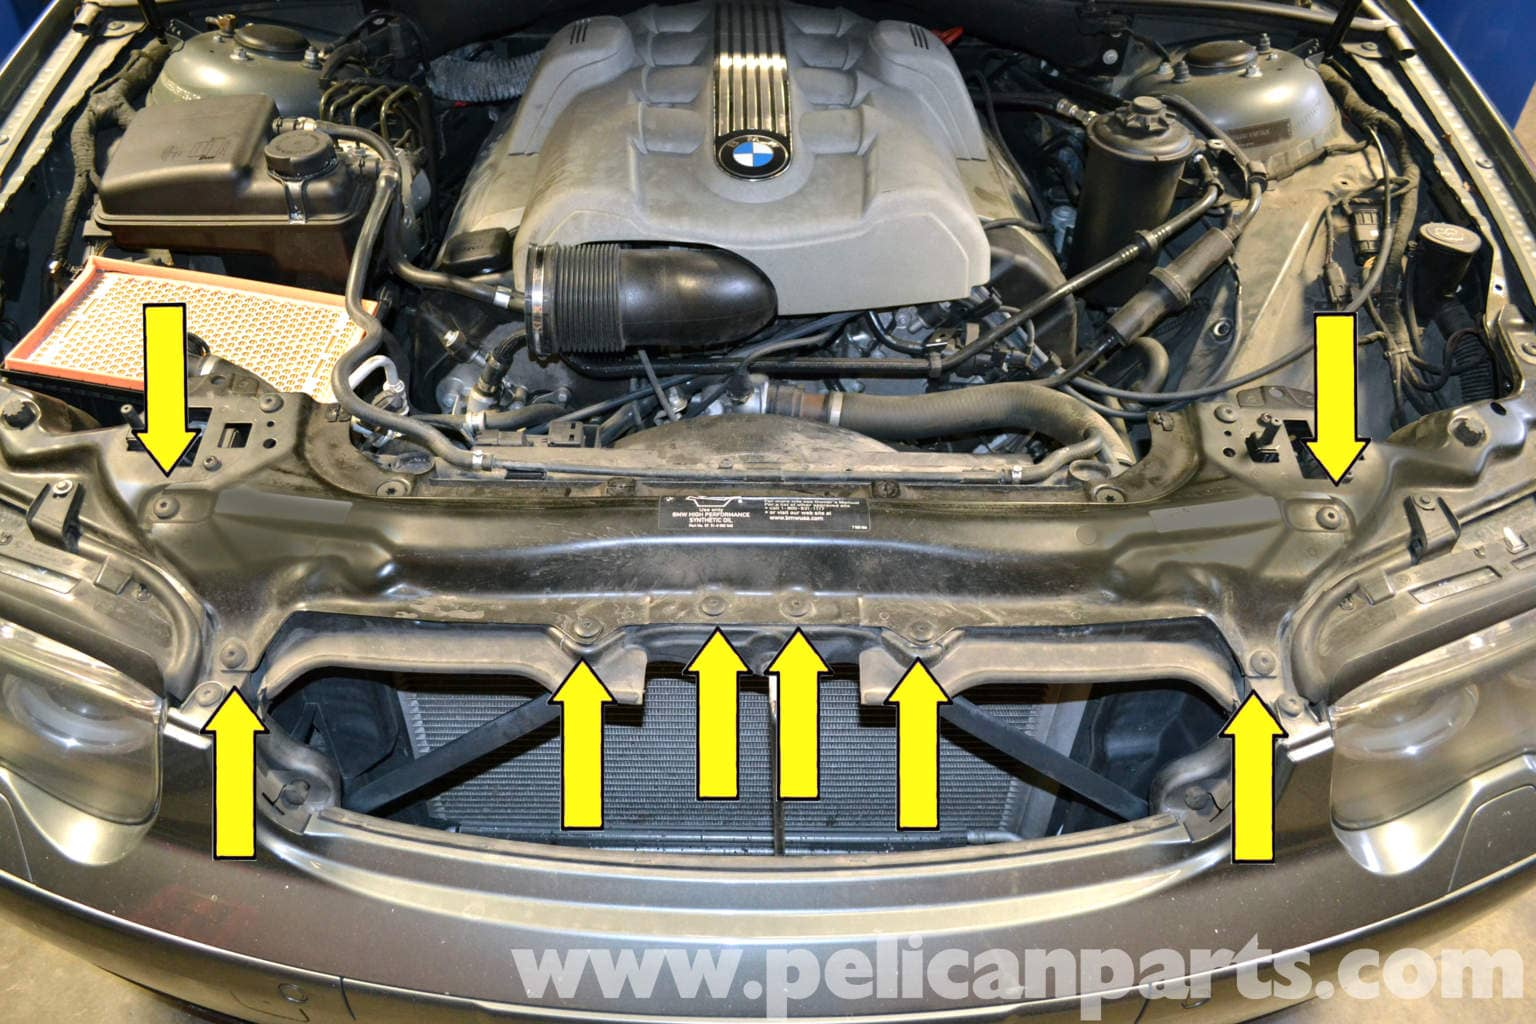 BMW The Infamous Alternator Bracket Oil Leak on the E65